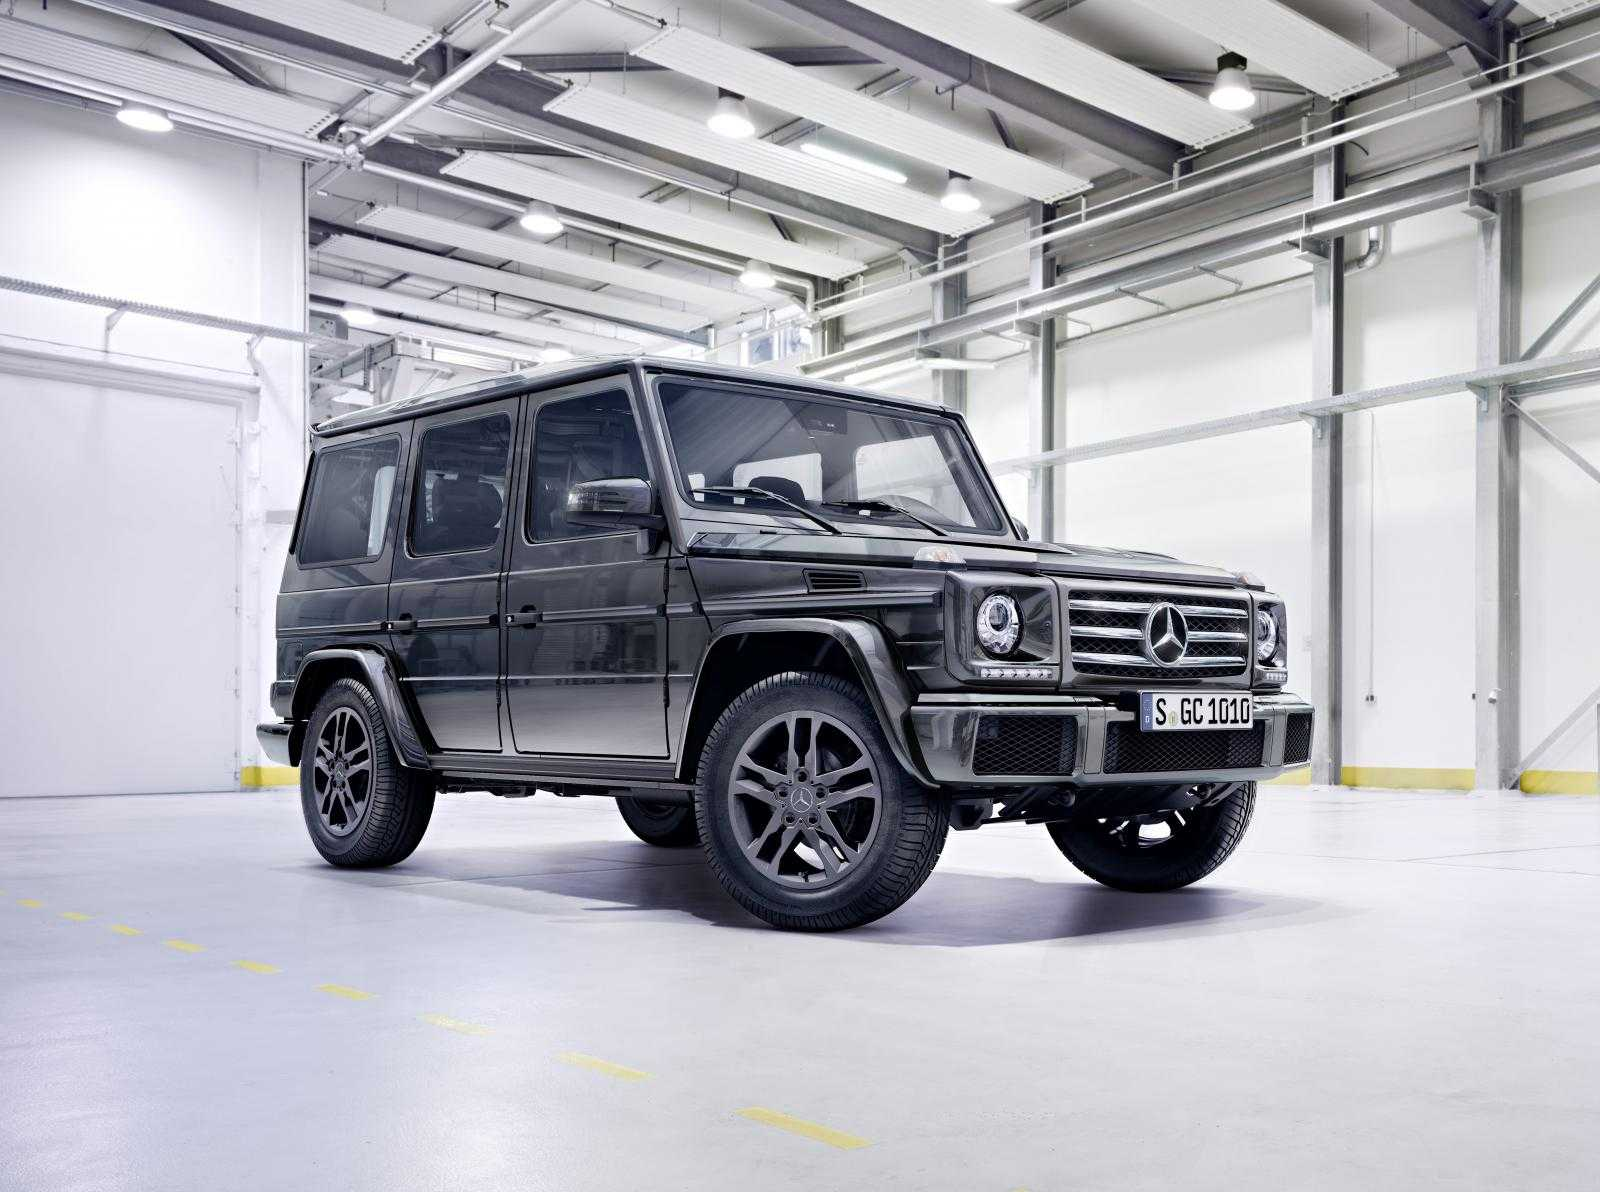 2016 Mercedes-Benz G550 Arrives in US in November with New AMG Engine